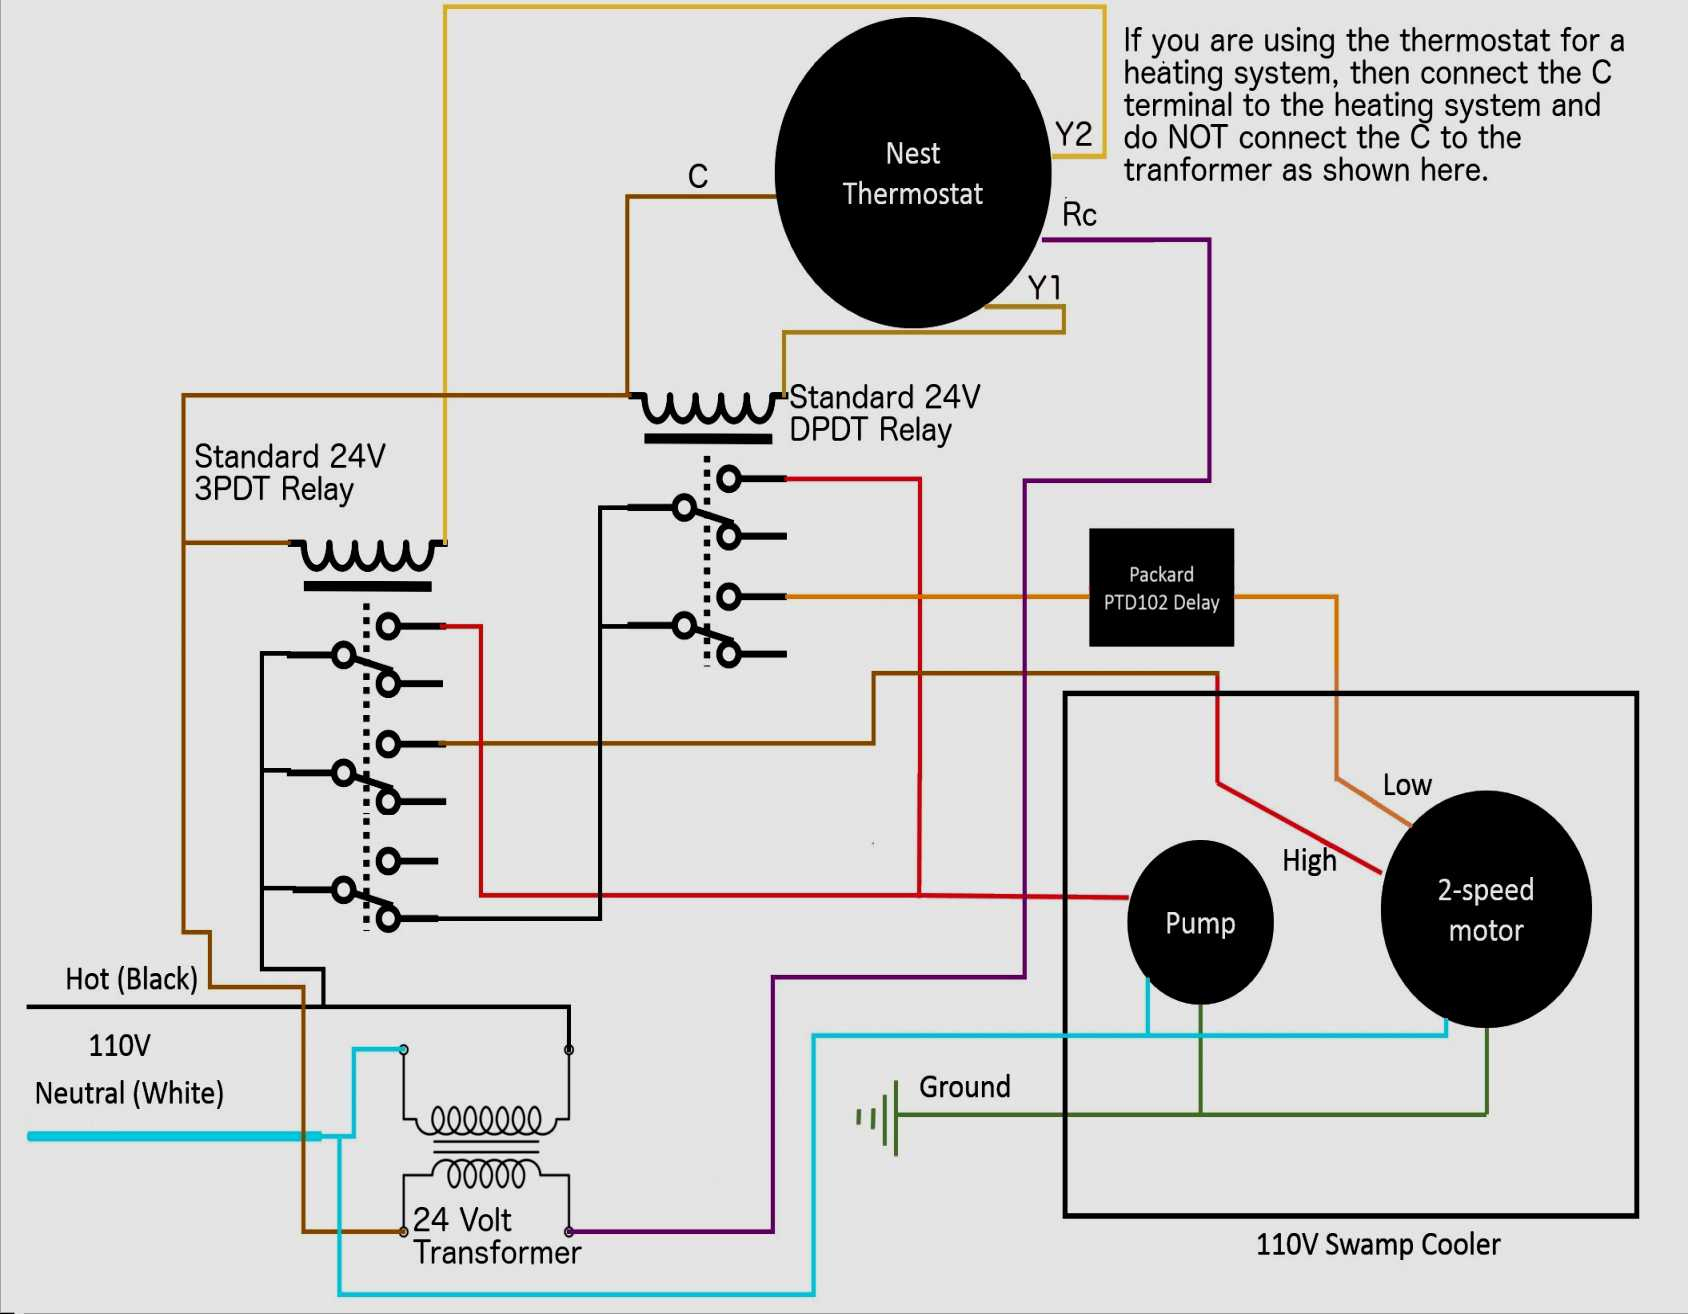 2 Stage Thermostat Wiring Diagram | Manual E-Books - Nest Thermostat Wiring Diagram Heat And Cool Diagram